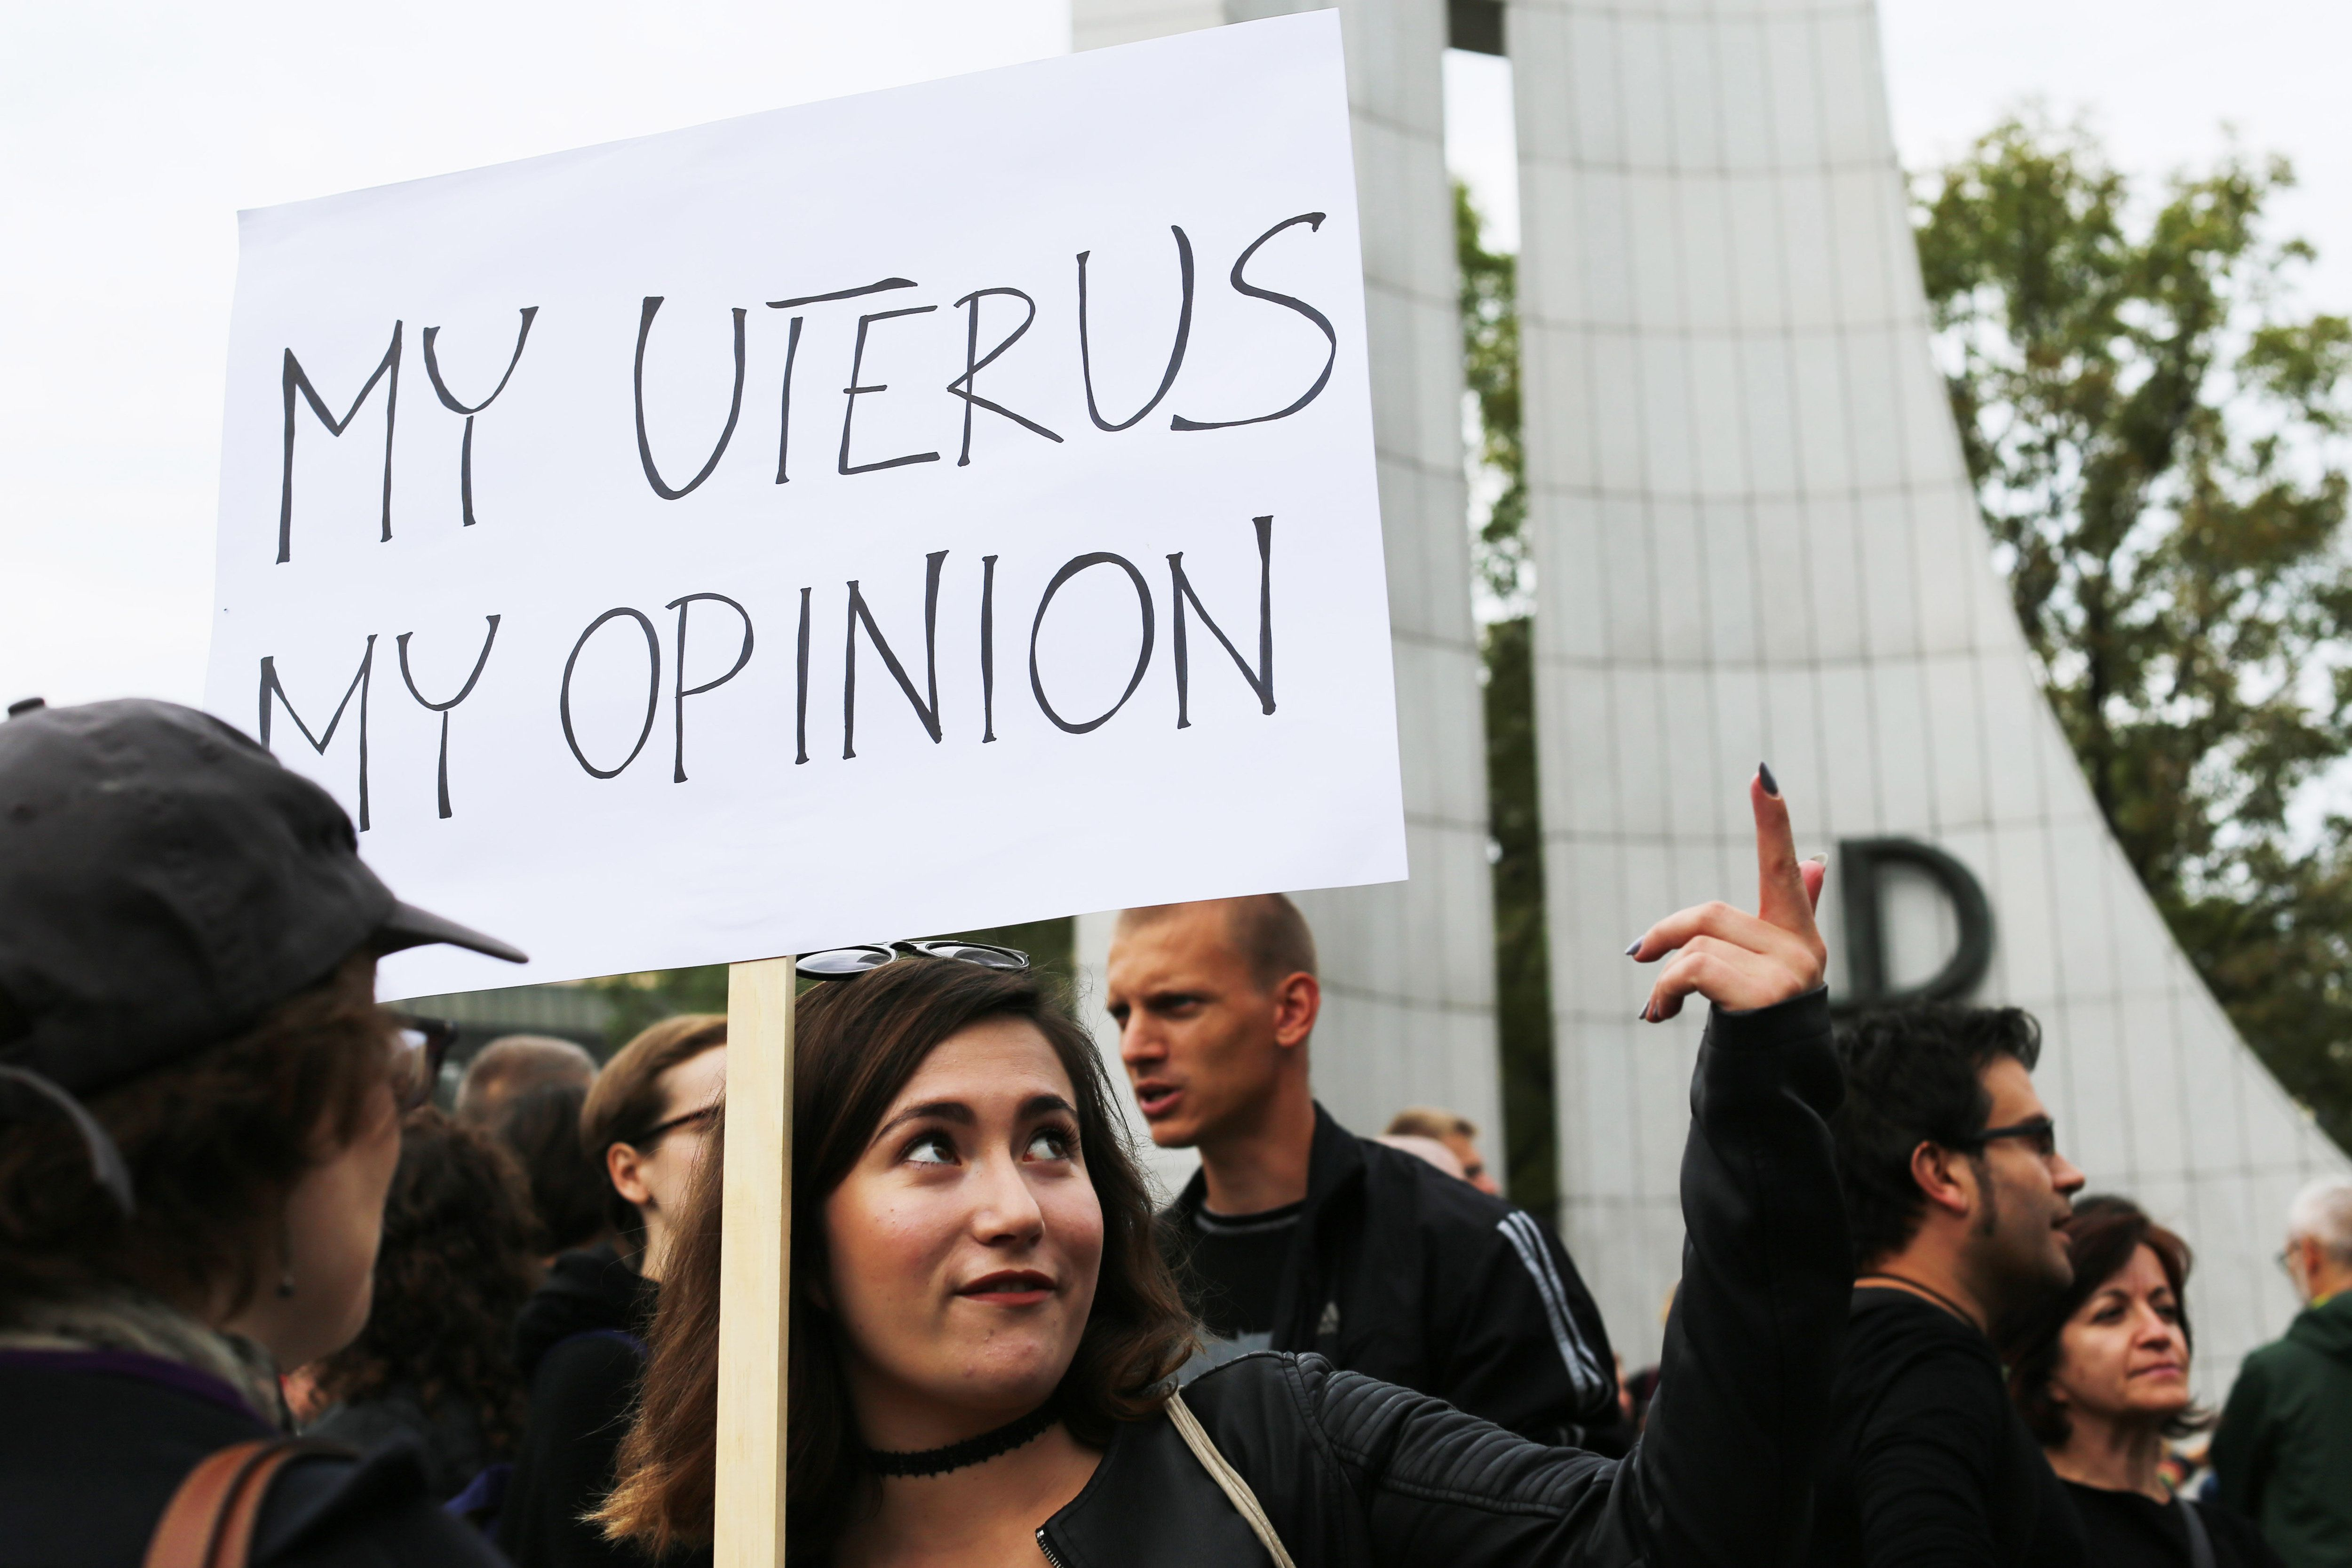 WARSAW, POLAND - 2016/10/01: A woman holds up a sign  reads, 'My uterus, My Opinions'  during a protest in front of the Polish parliament against a legislative project that will effectively outlaw all abortions under every circumstance, including rape and incest. The proposed project also seeks jail time for women who abort. Protesters united under the slogan 'No More Jokes! My body, my decision' voicing anger that  this project was approved by the right-wing majority in Poland's parliament and will be further debated on. Meanwhile another project, backed by pro-choice politicians and groups, was rejected by the parliament in the first reading. (Photo by Anna Ferensowicz/Pacific Press/LightRocket via Getty Images)